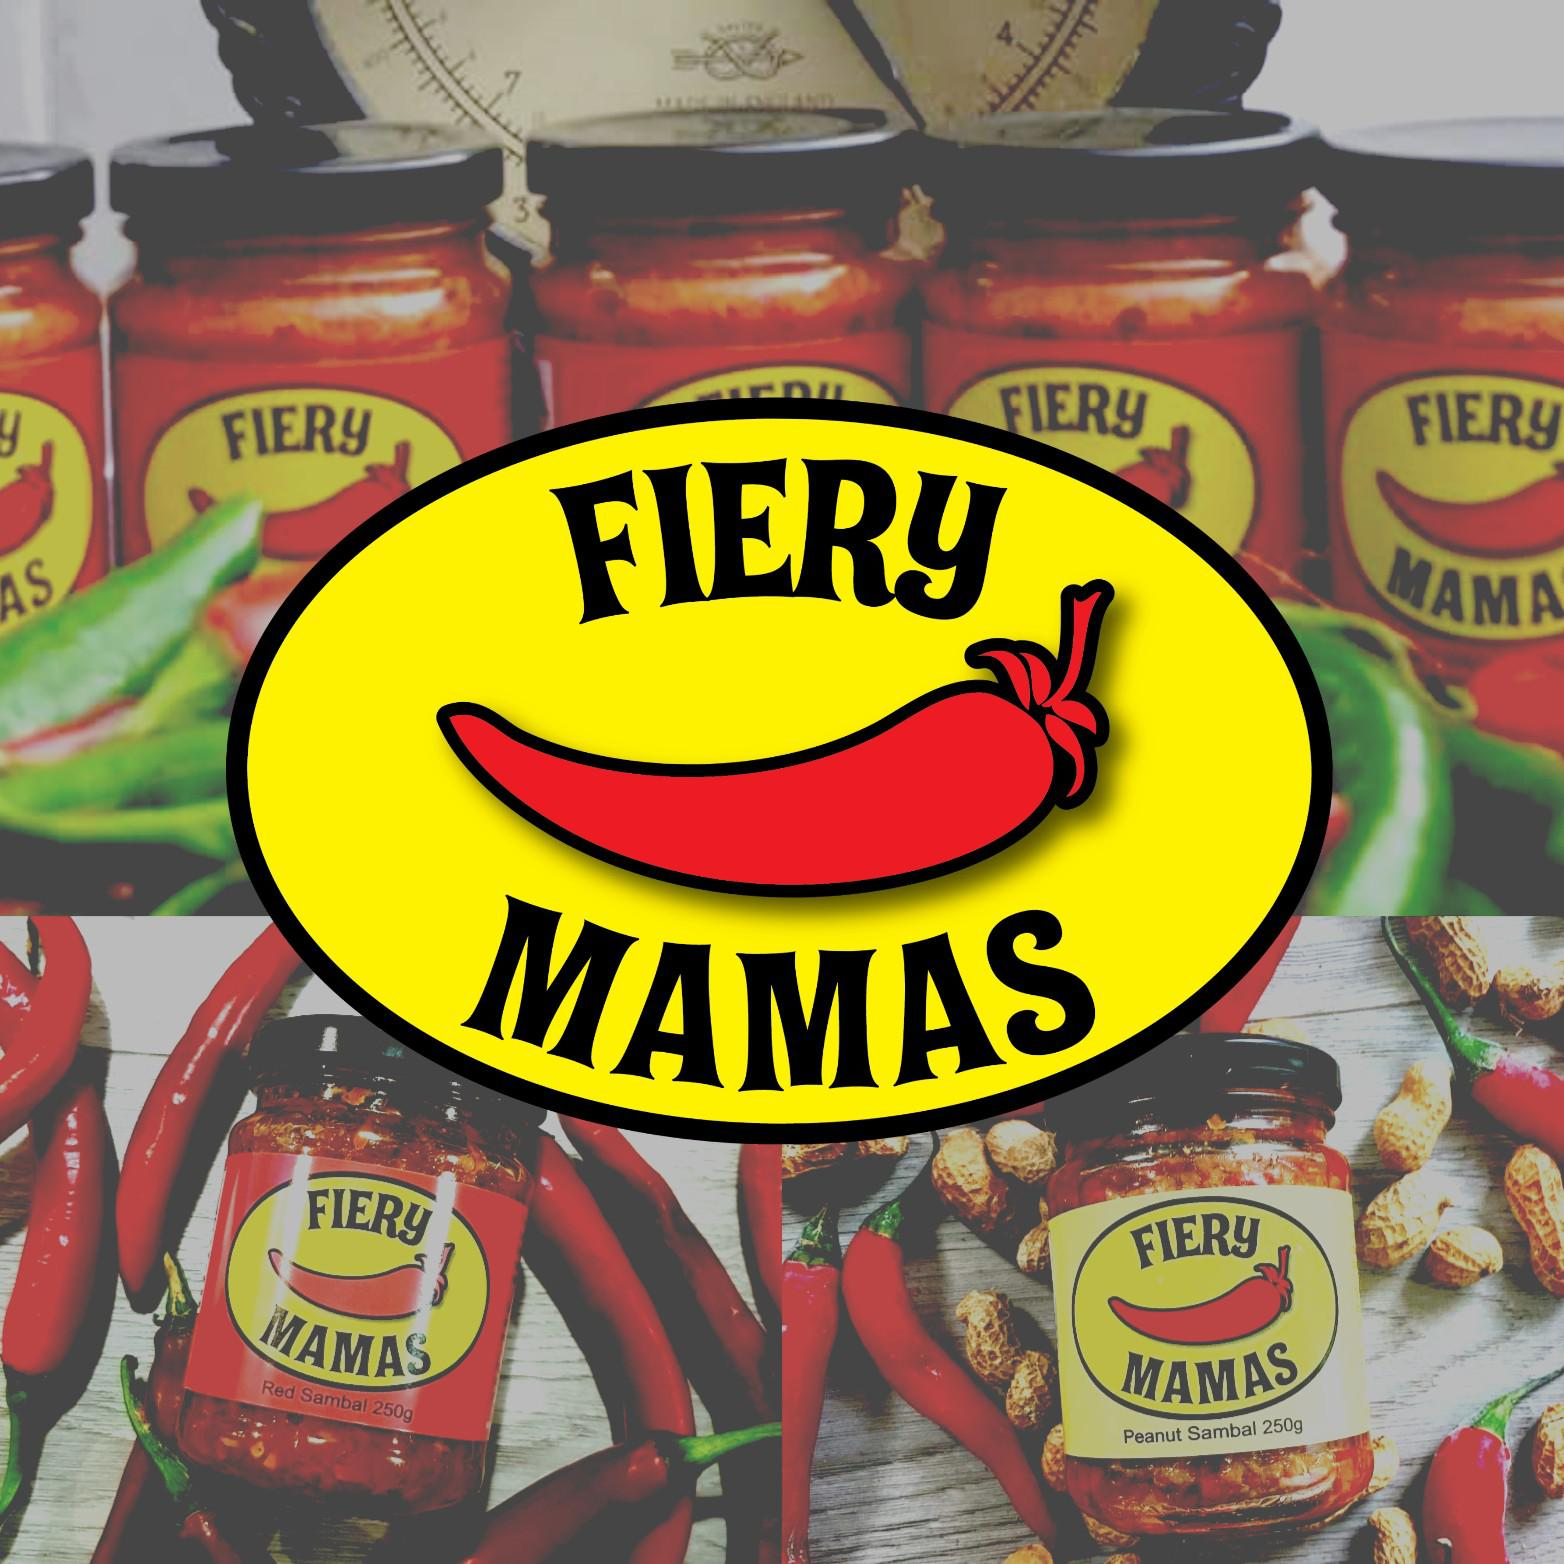 Fiery Mamas - The home of authentic Indonesian sambal